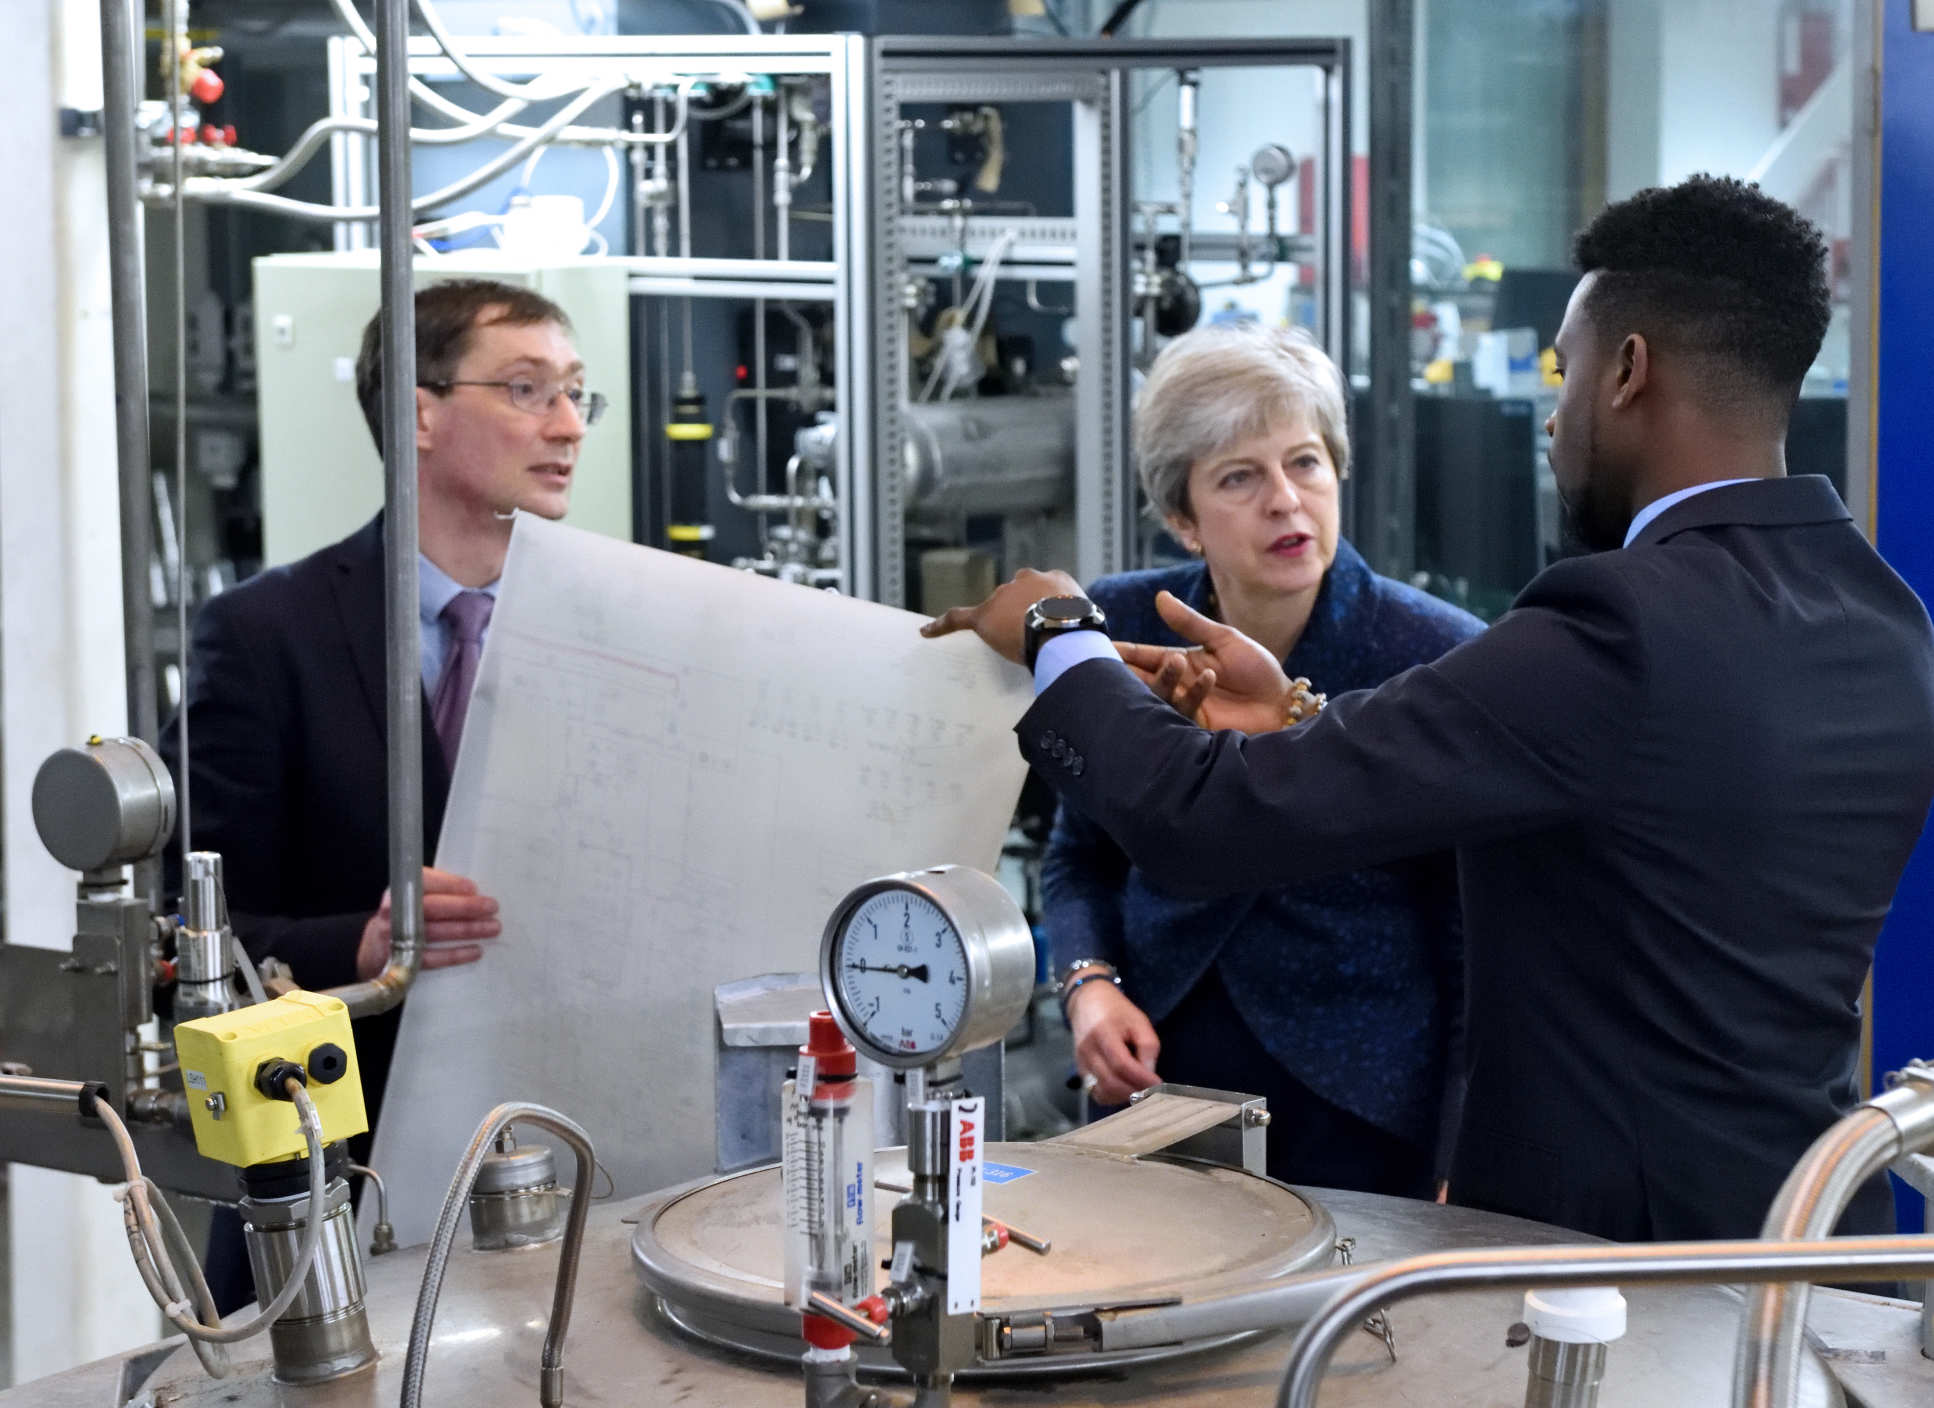 Undergraduate Ferdiand Agu and Dr Colin Hale showed the PM their work in carbon capture and storage